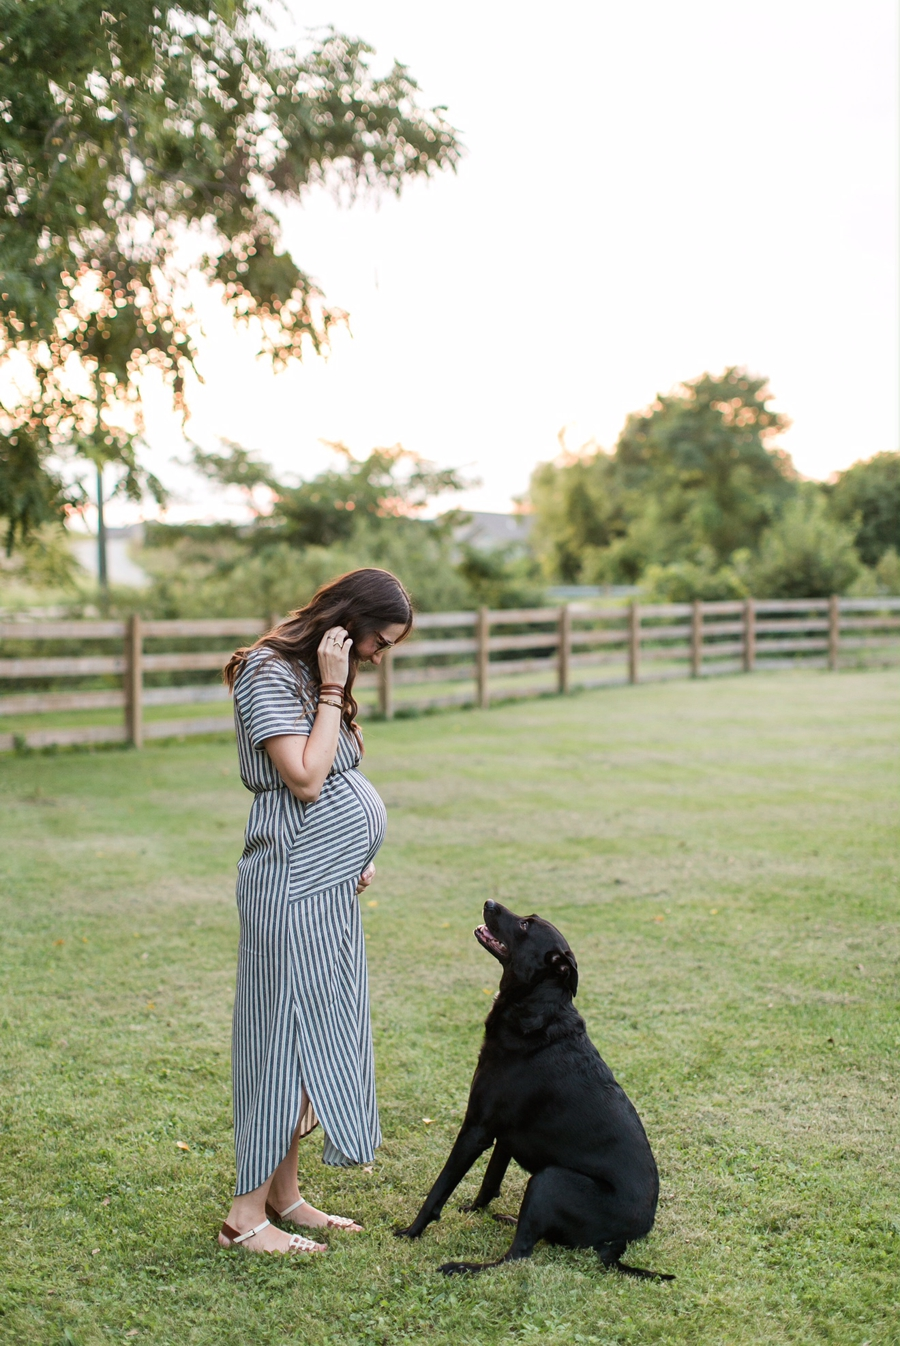 Photo from our maternity session with KariMe Photography at 31 weeks. Can't wait to share all of these photos with you! Scout has no idea what she's in for.